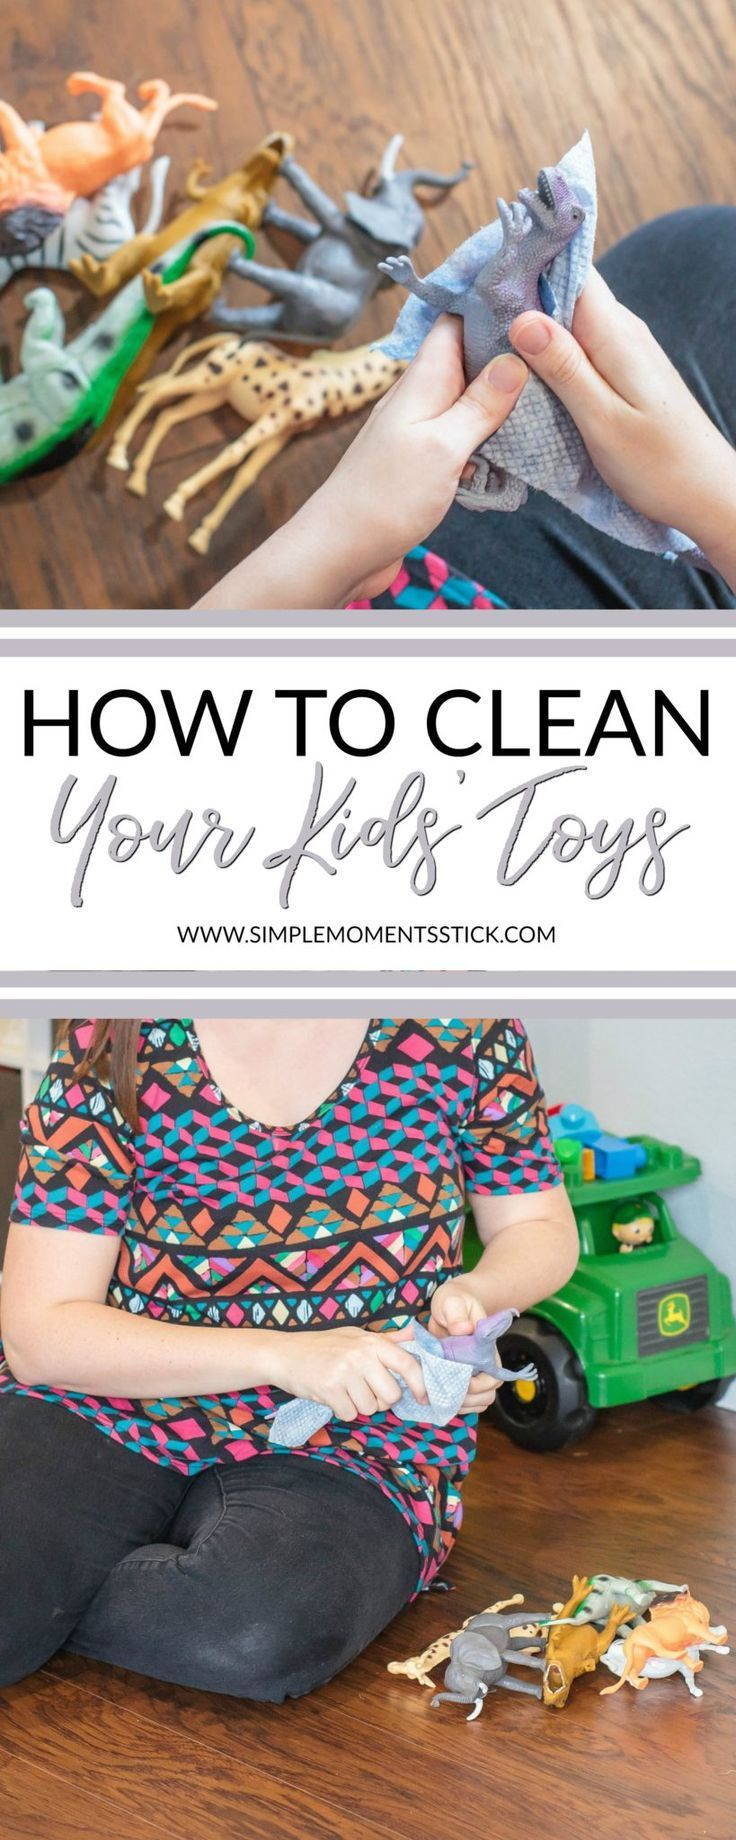 Toys images for kids  How to Clean Kidus Toys In One Fell Swoop  Kid Ideas  Pinterest